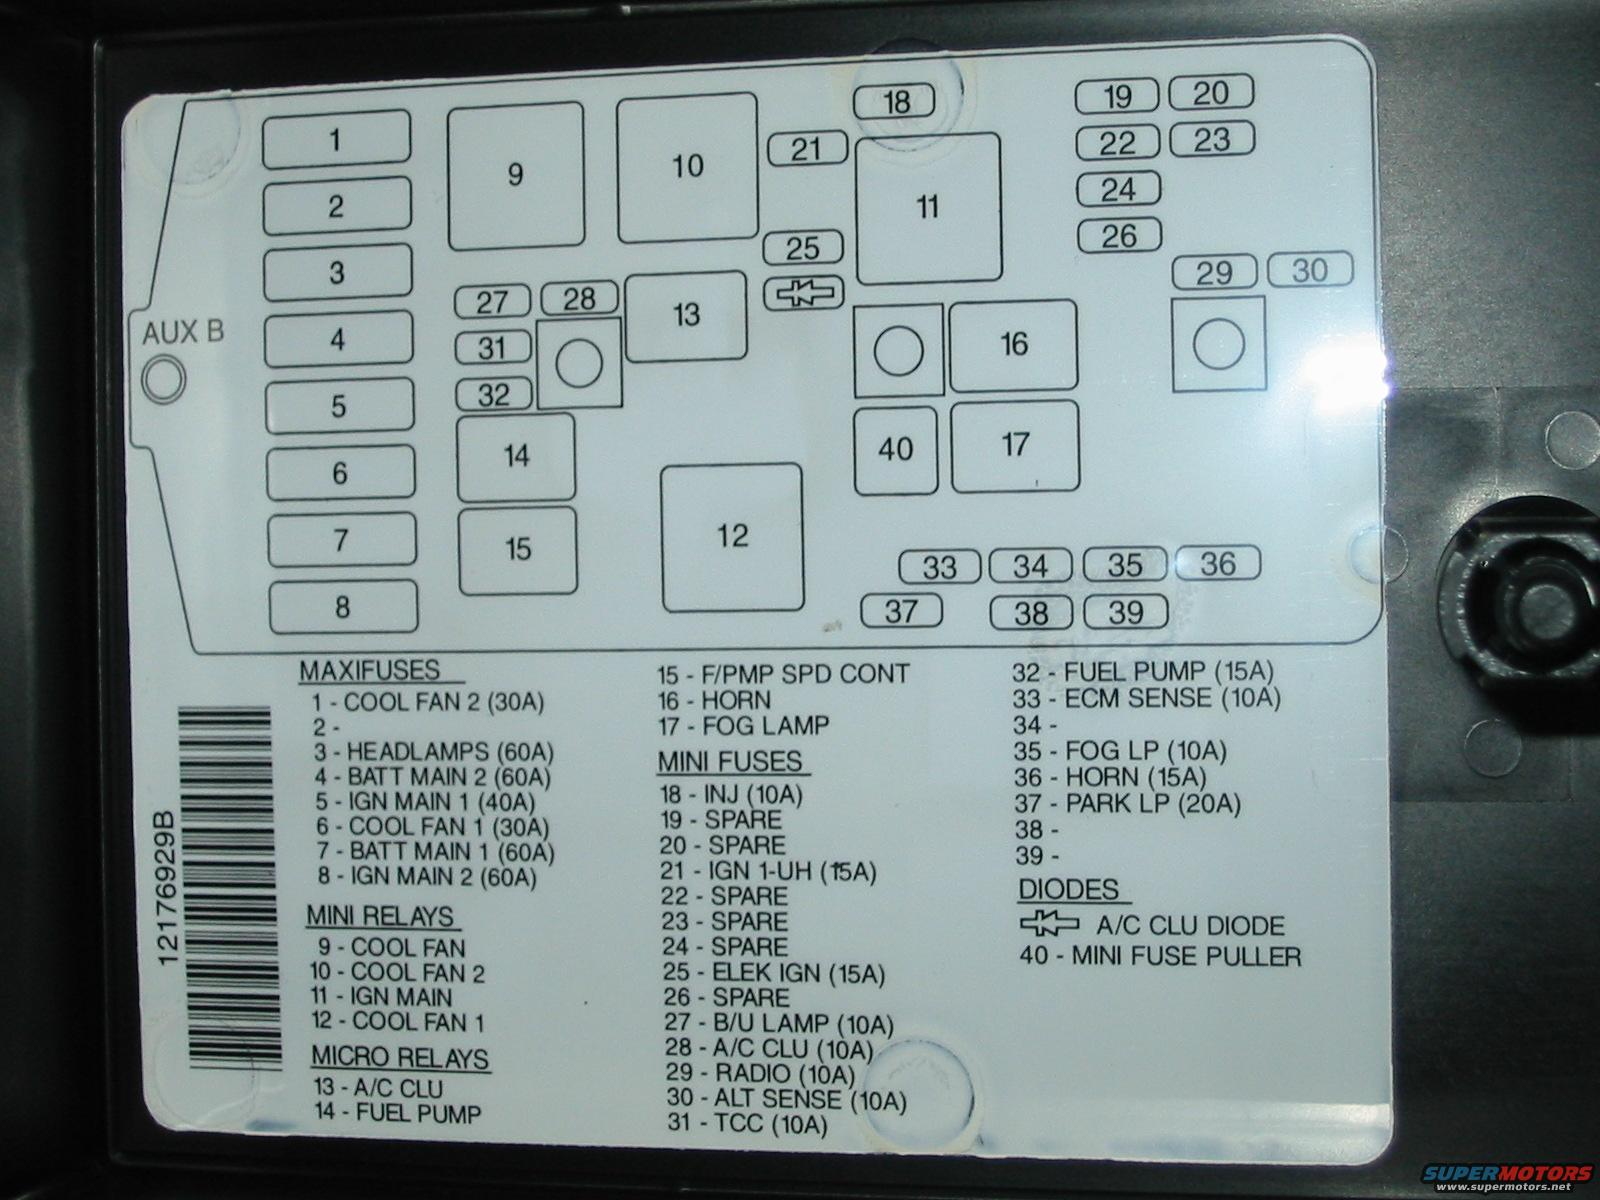 fuse relay panel diagram speedometer stops working in neutral page 2 2010 peterbilt 387 fuse box diagram at suagrazia.org